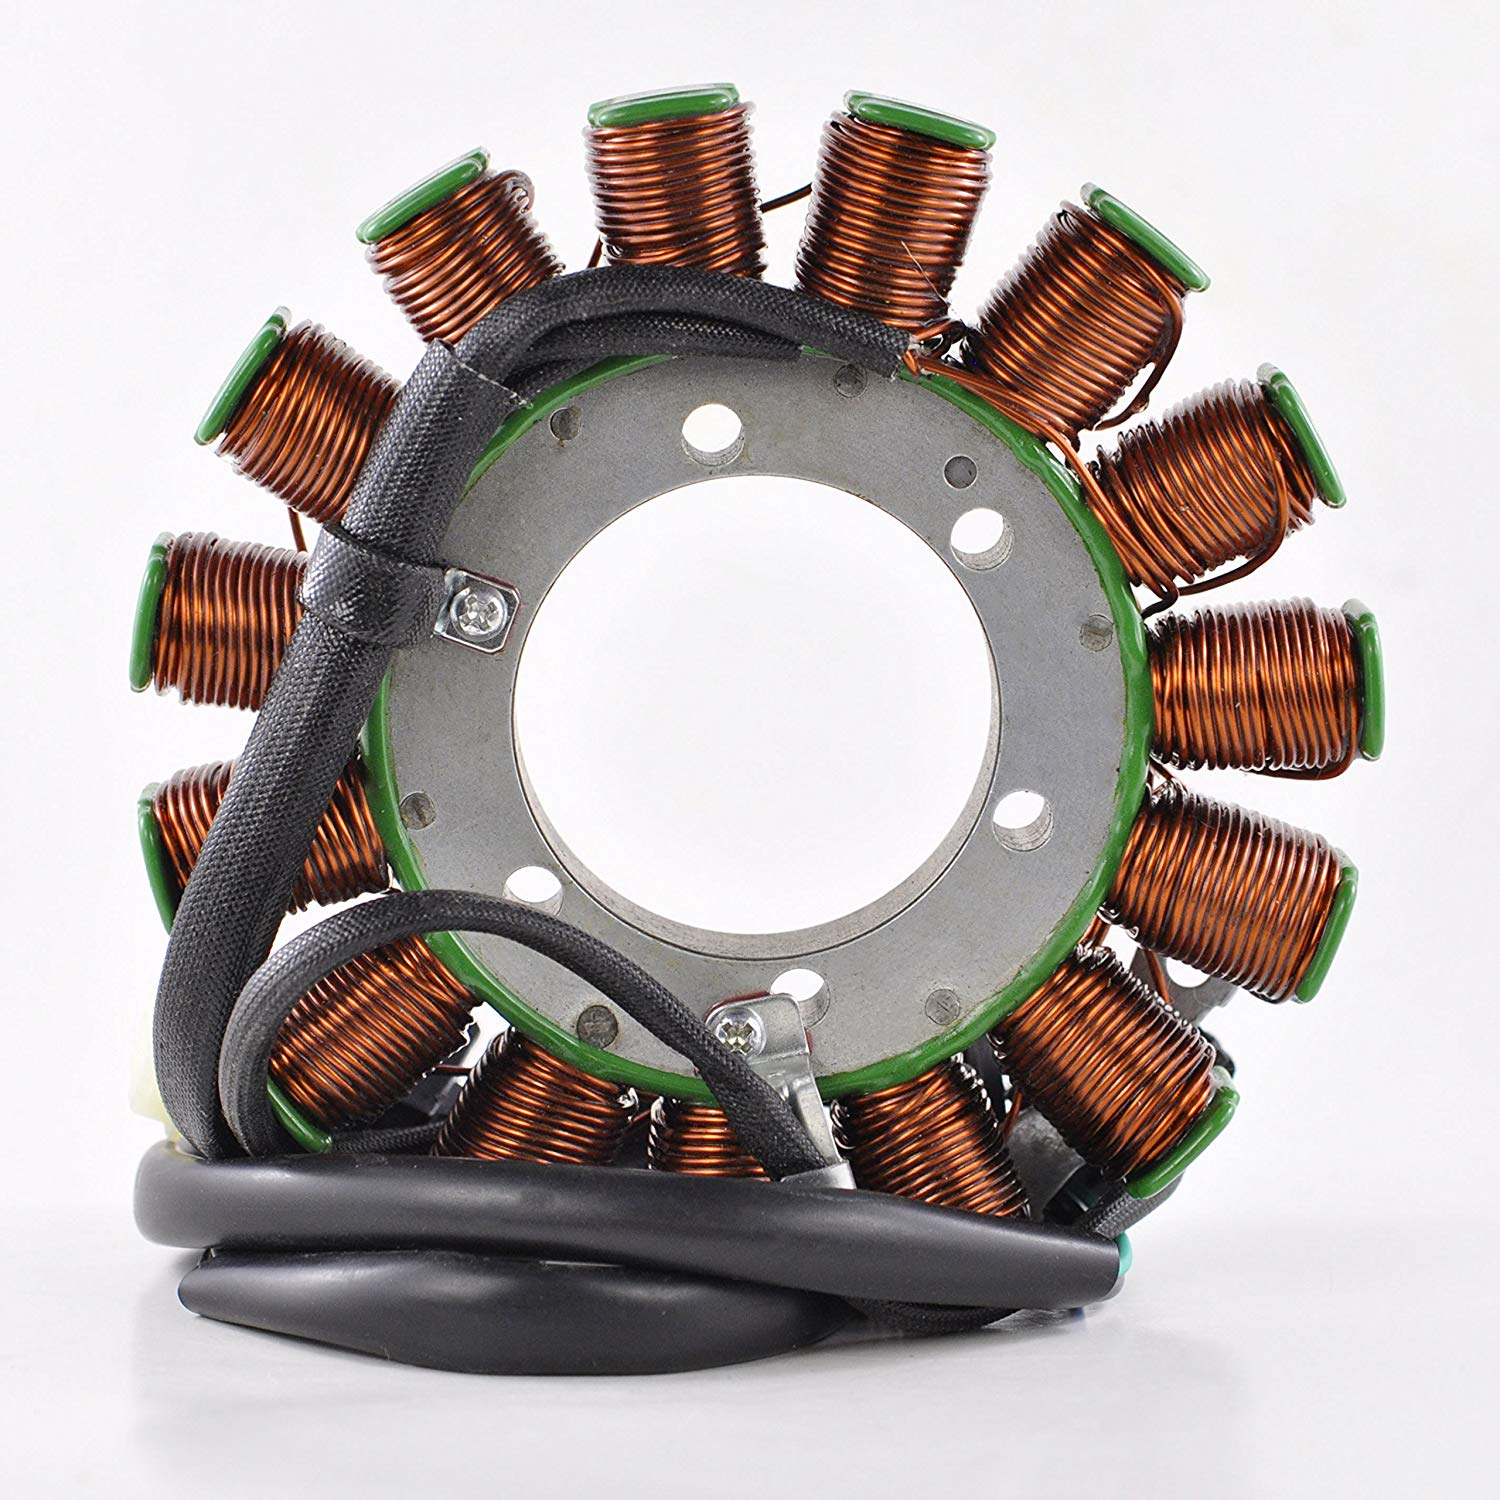 Cheap Generator 1800 Find Deals On Line At Alibabacom 50w 110v Ultrasonic Circuit Get Quotations Stator For Suzuki Boulevard M109r Vzr1800 Vzr 2006 2007 2008 2009 2011 2012 2013